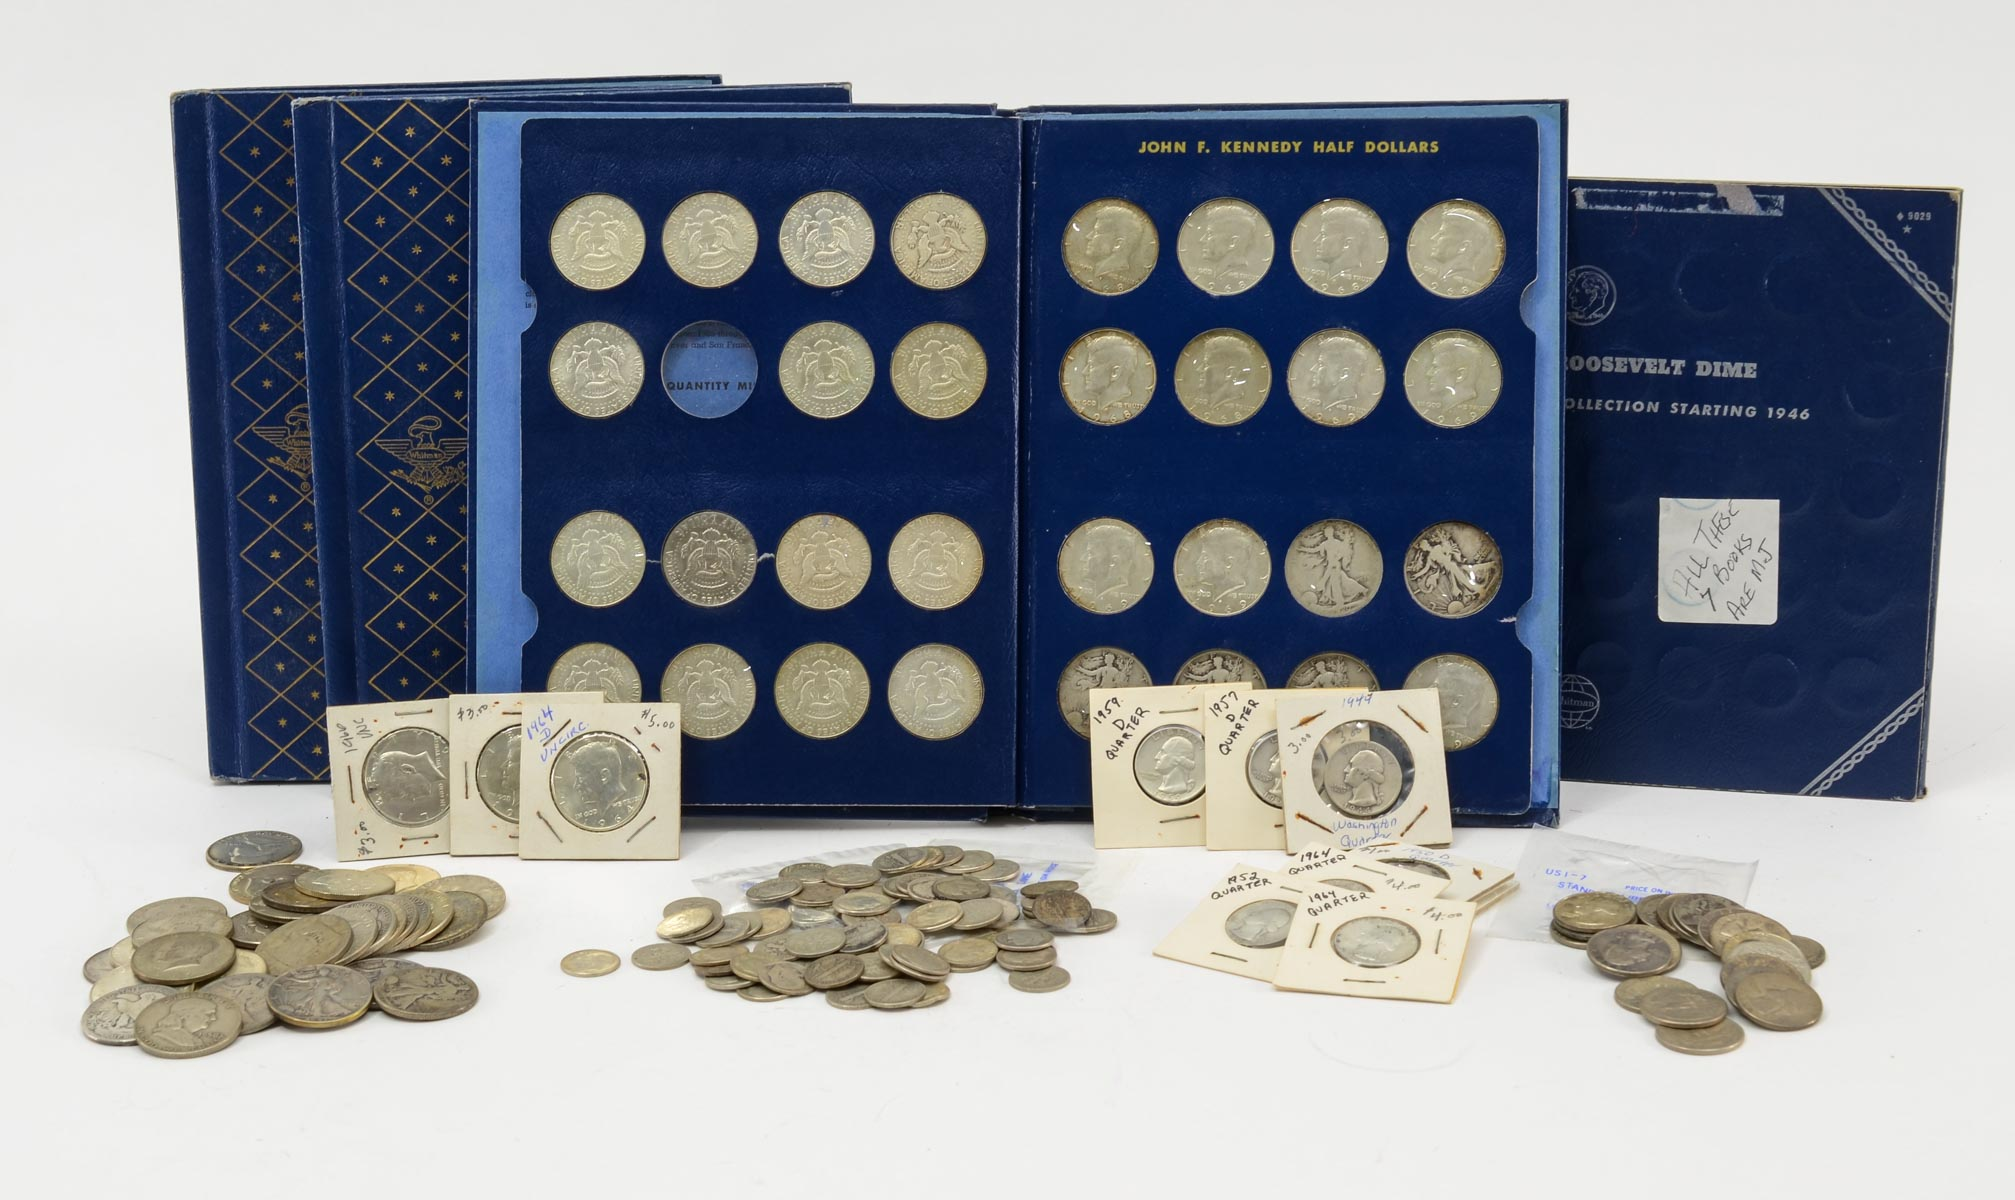 Coin Collection of Silver Half Dollars